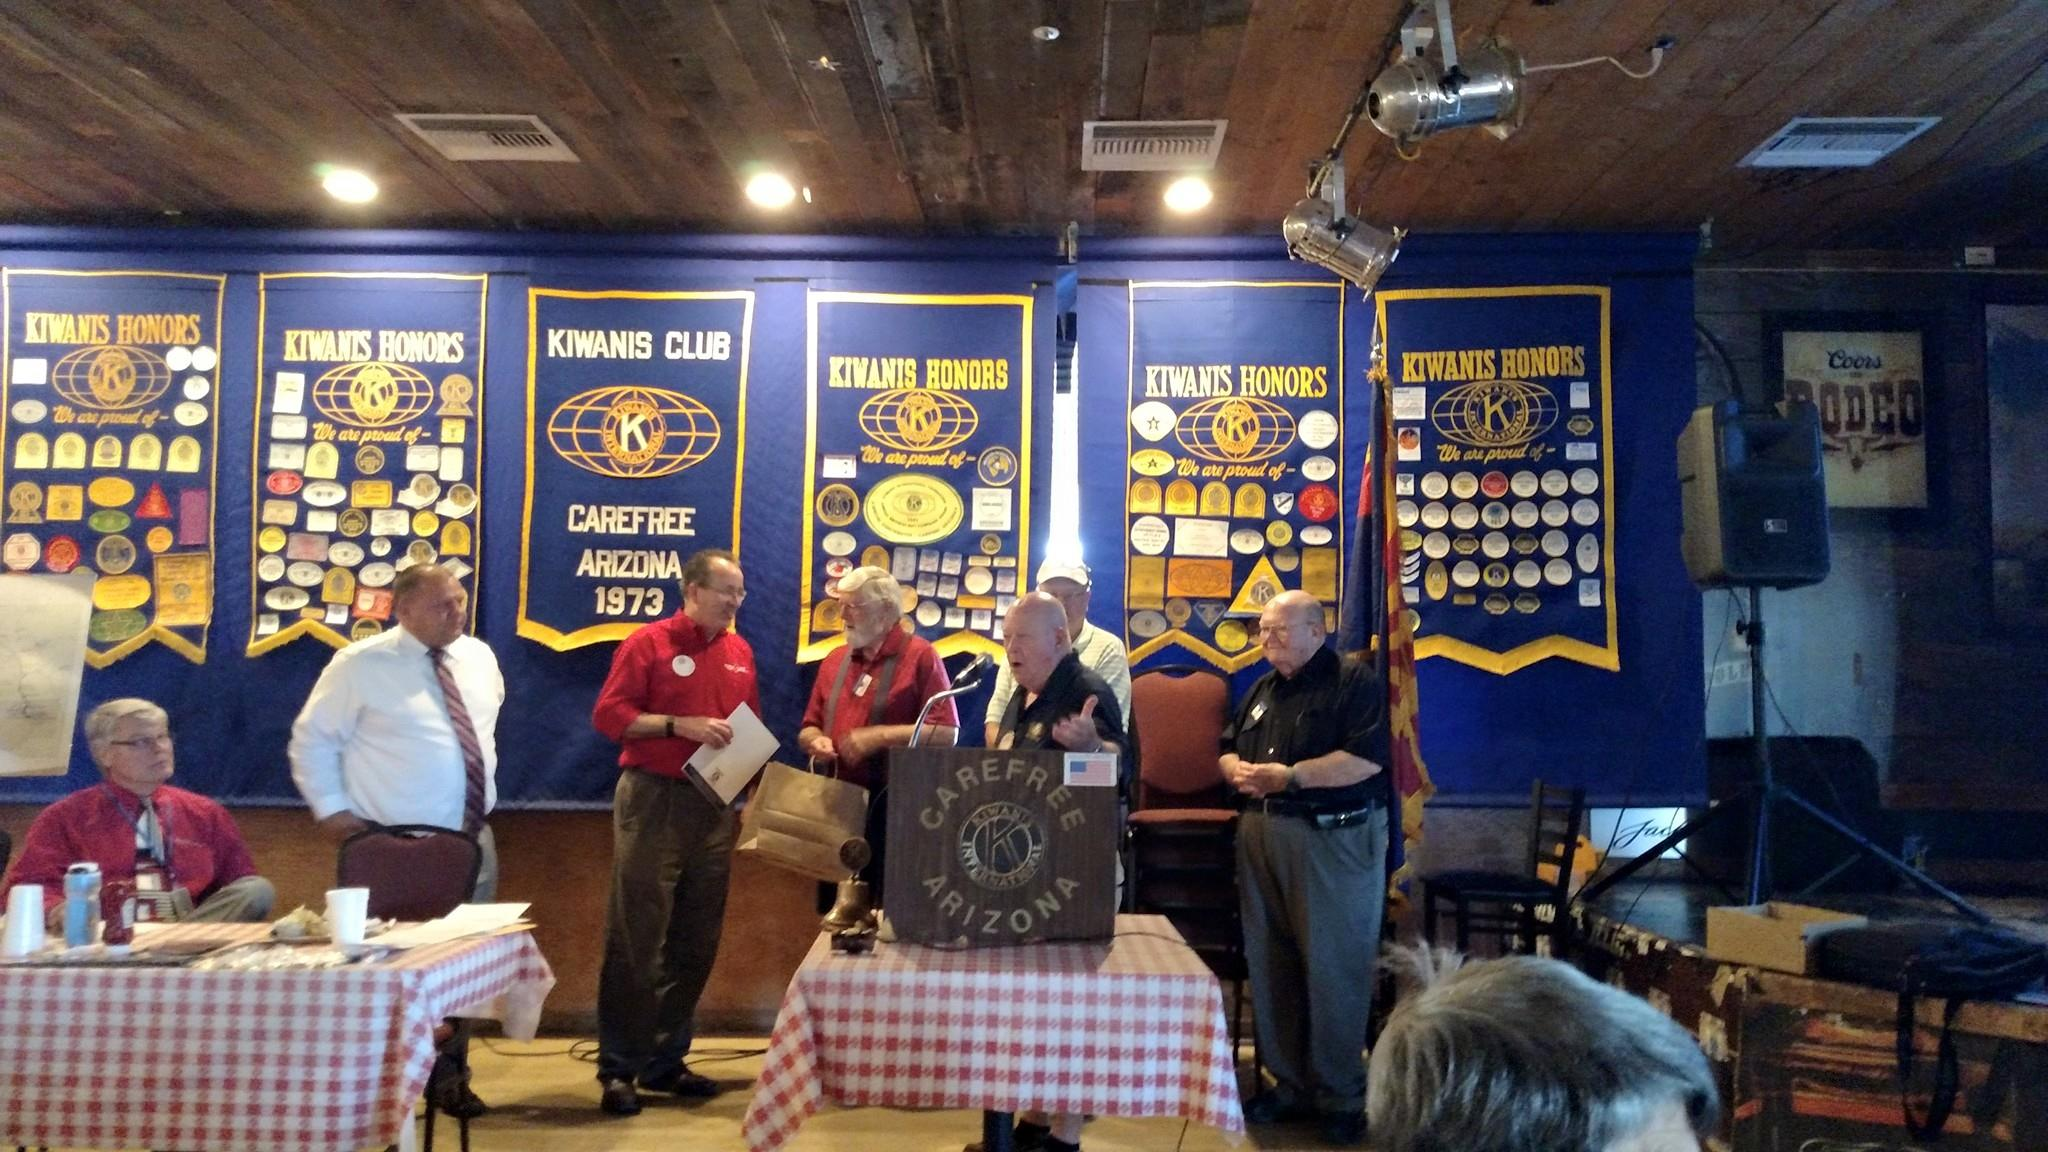 Tech 4 Life joins Kiwanis of carefree